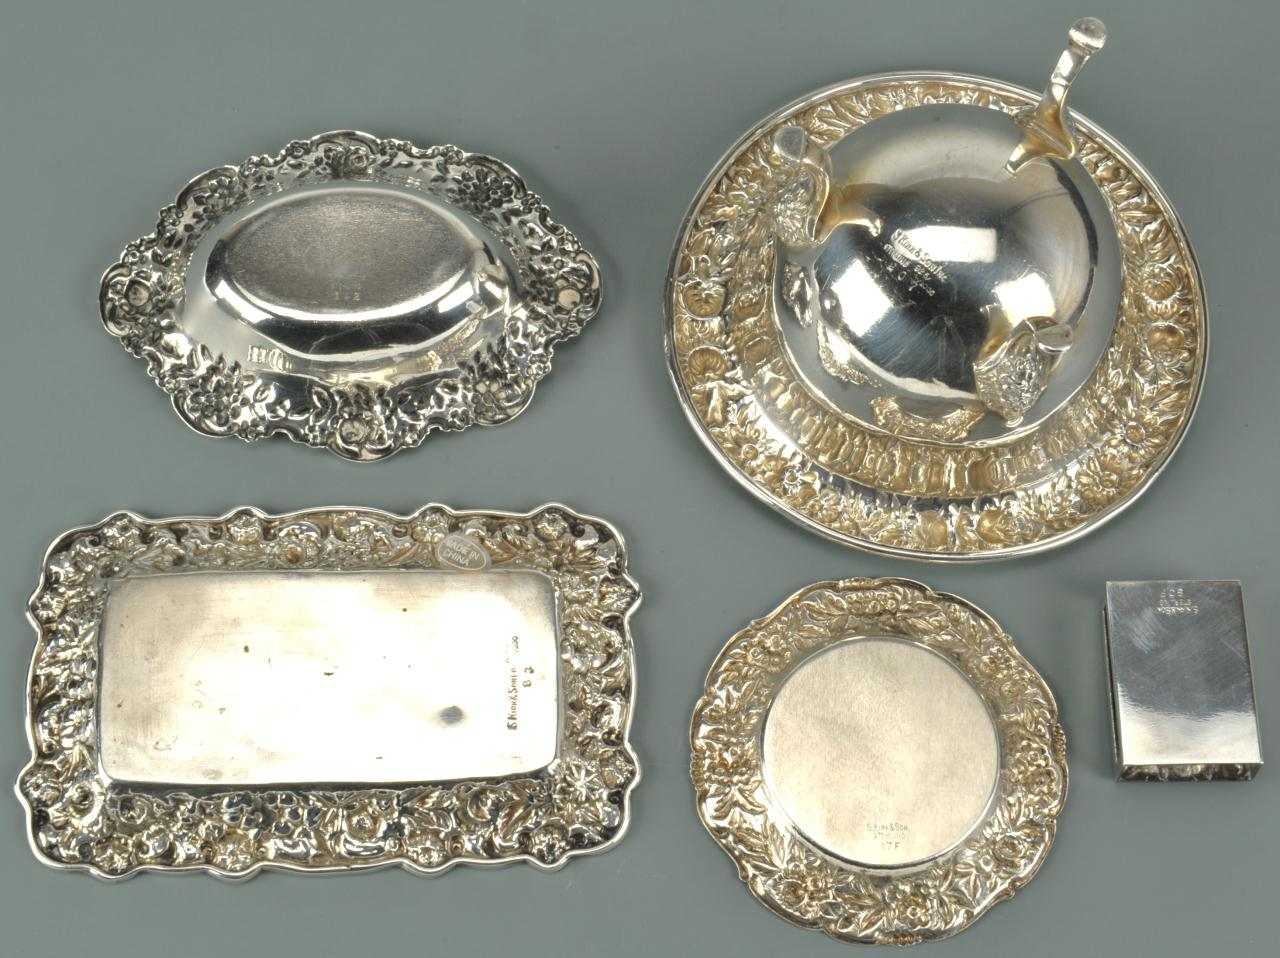 Lot 471: Five Kirk Repousse sterling silver table items